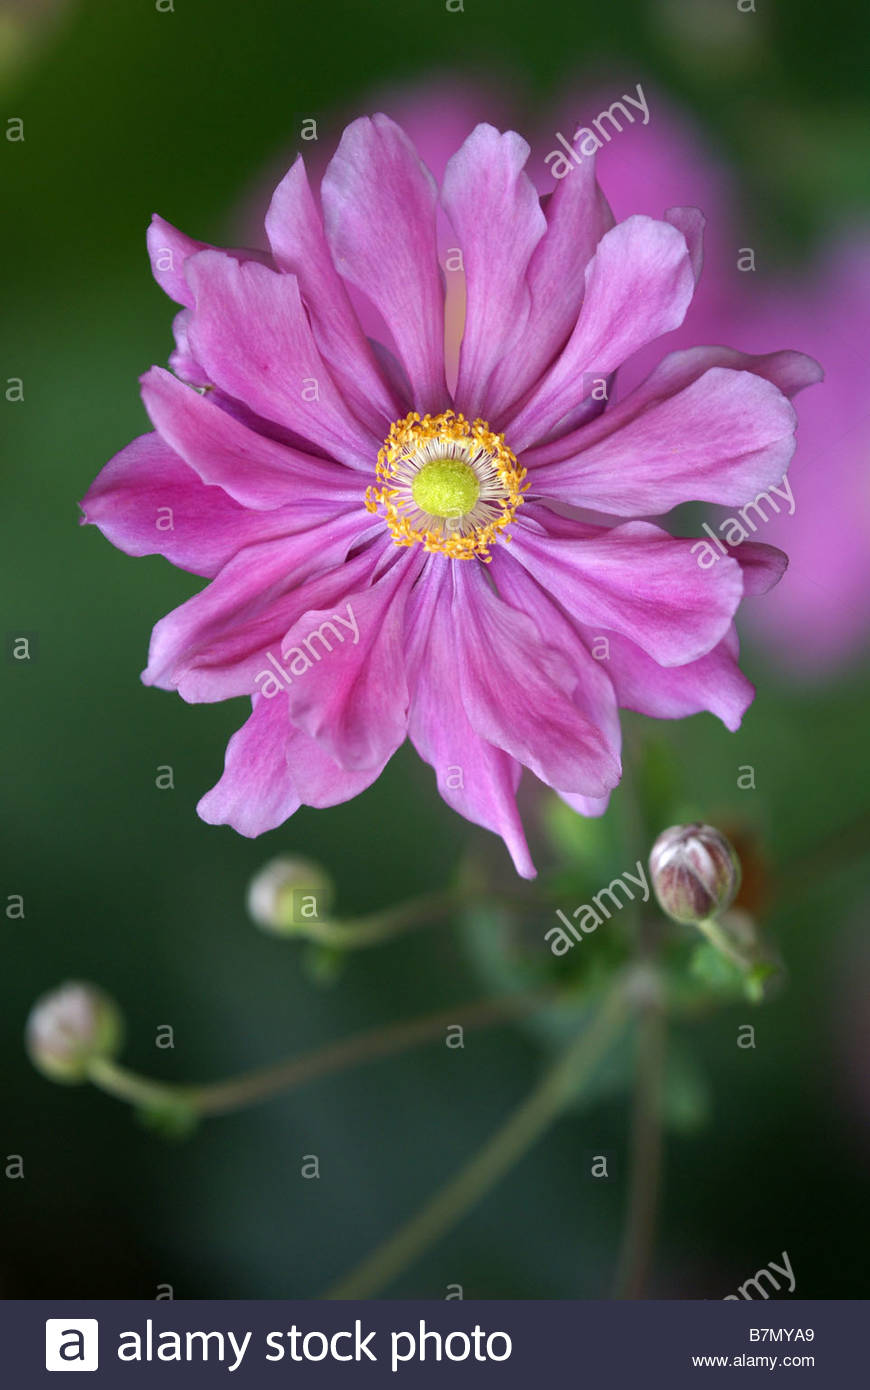 anemone-japonica-japanese-thimbleweed-an